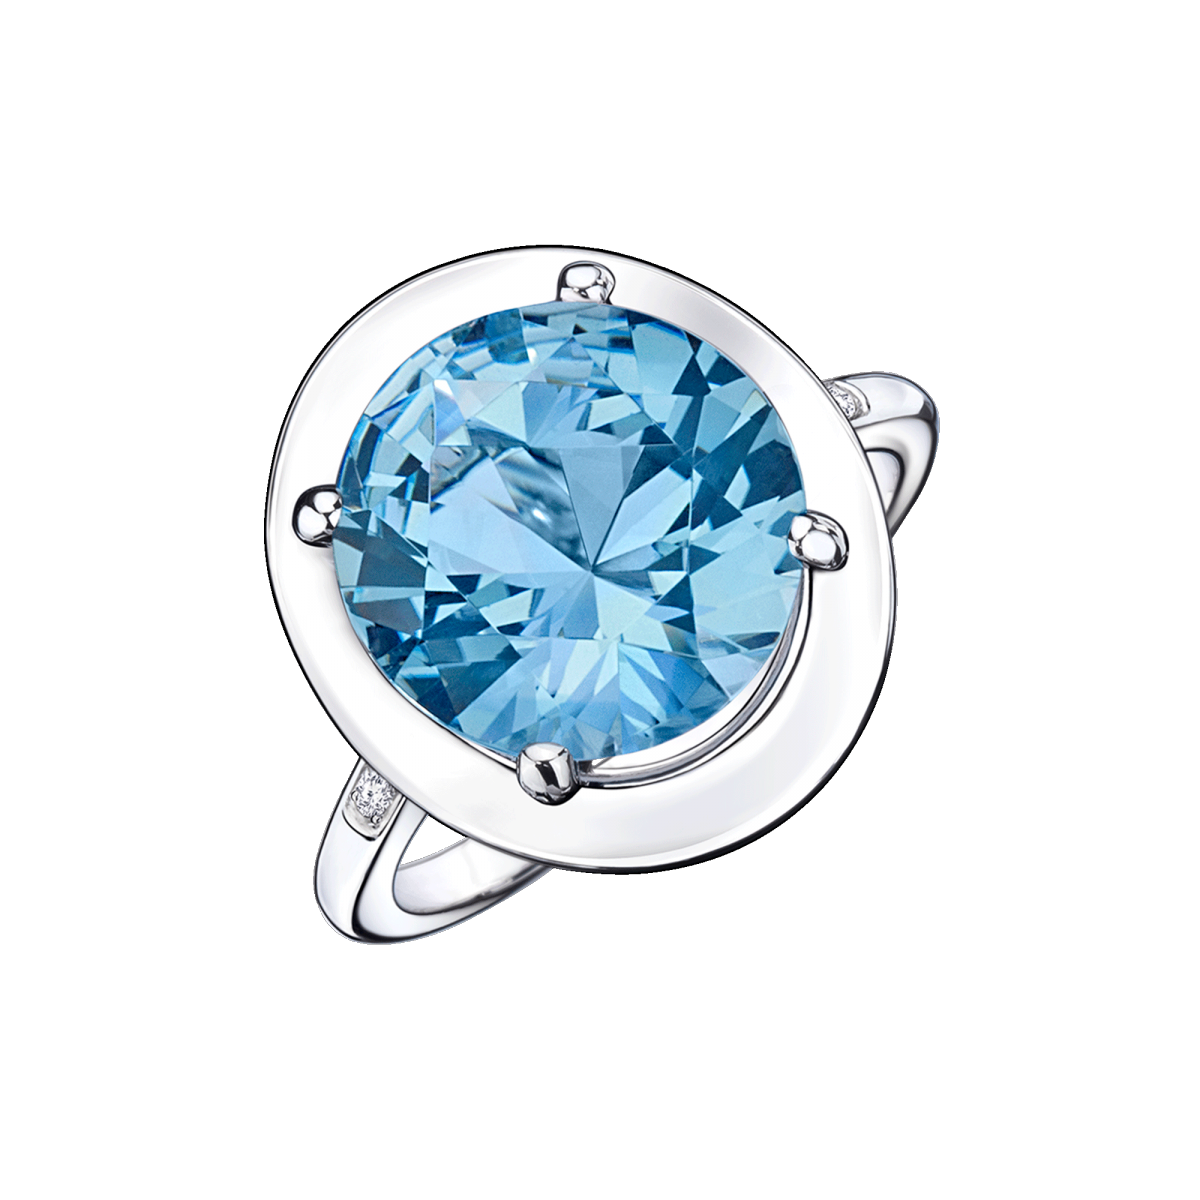 Ring Vraiment Jolie Mon Amour, white gold, blue topaz and diamonds